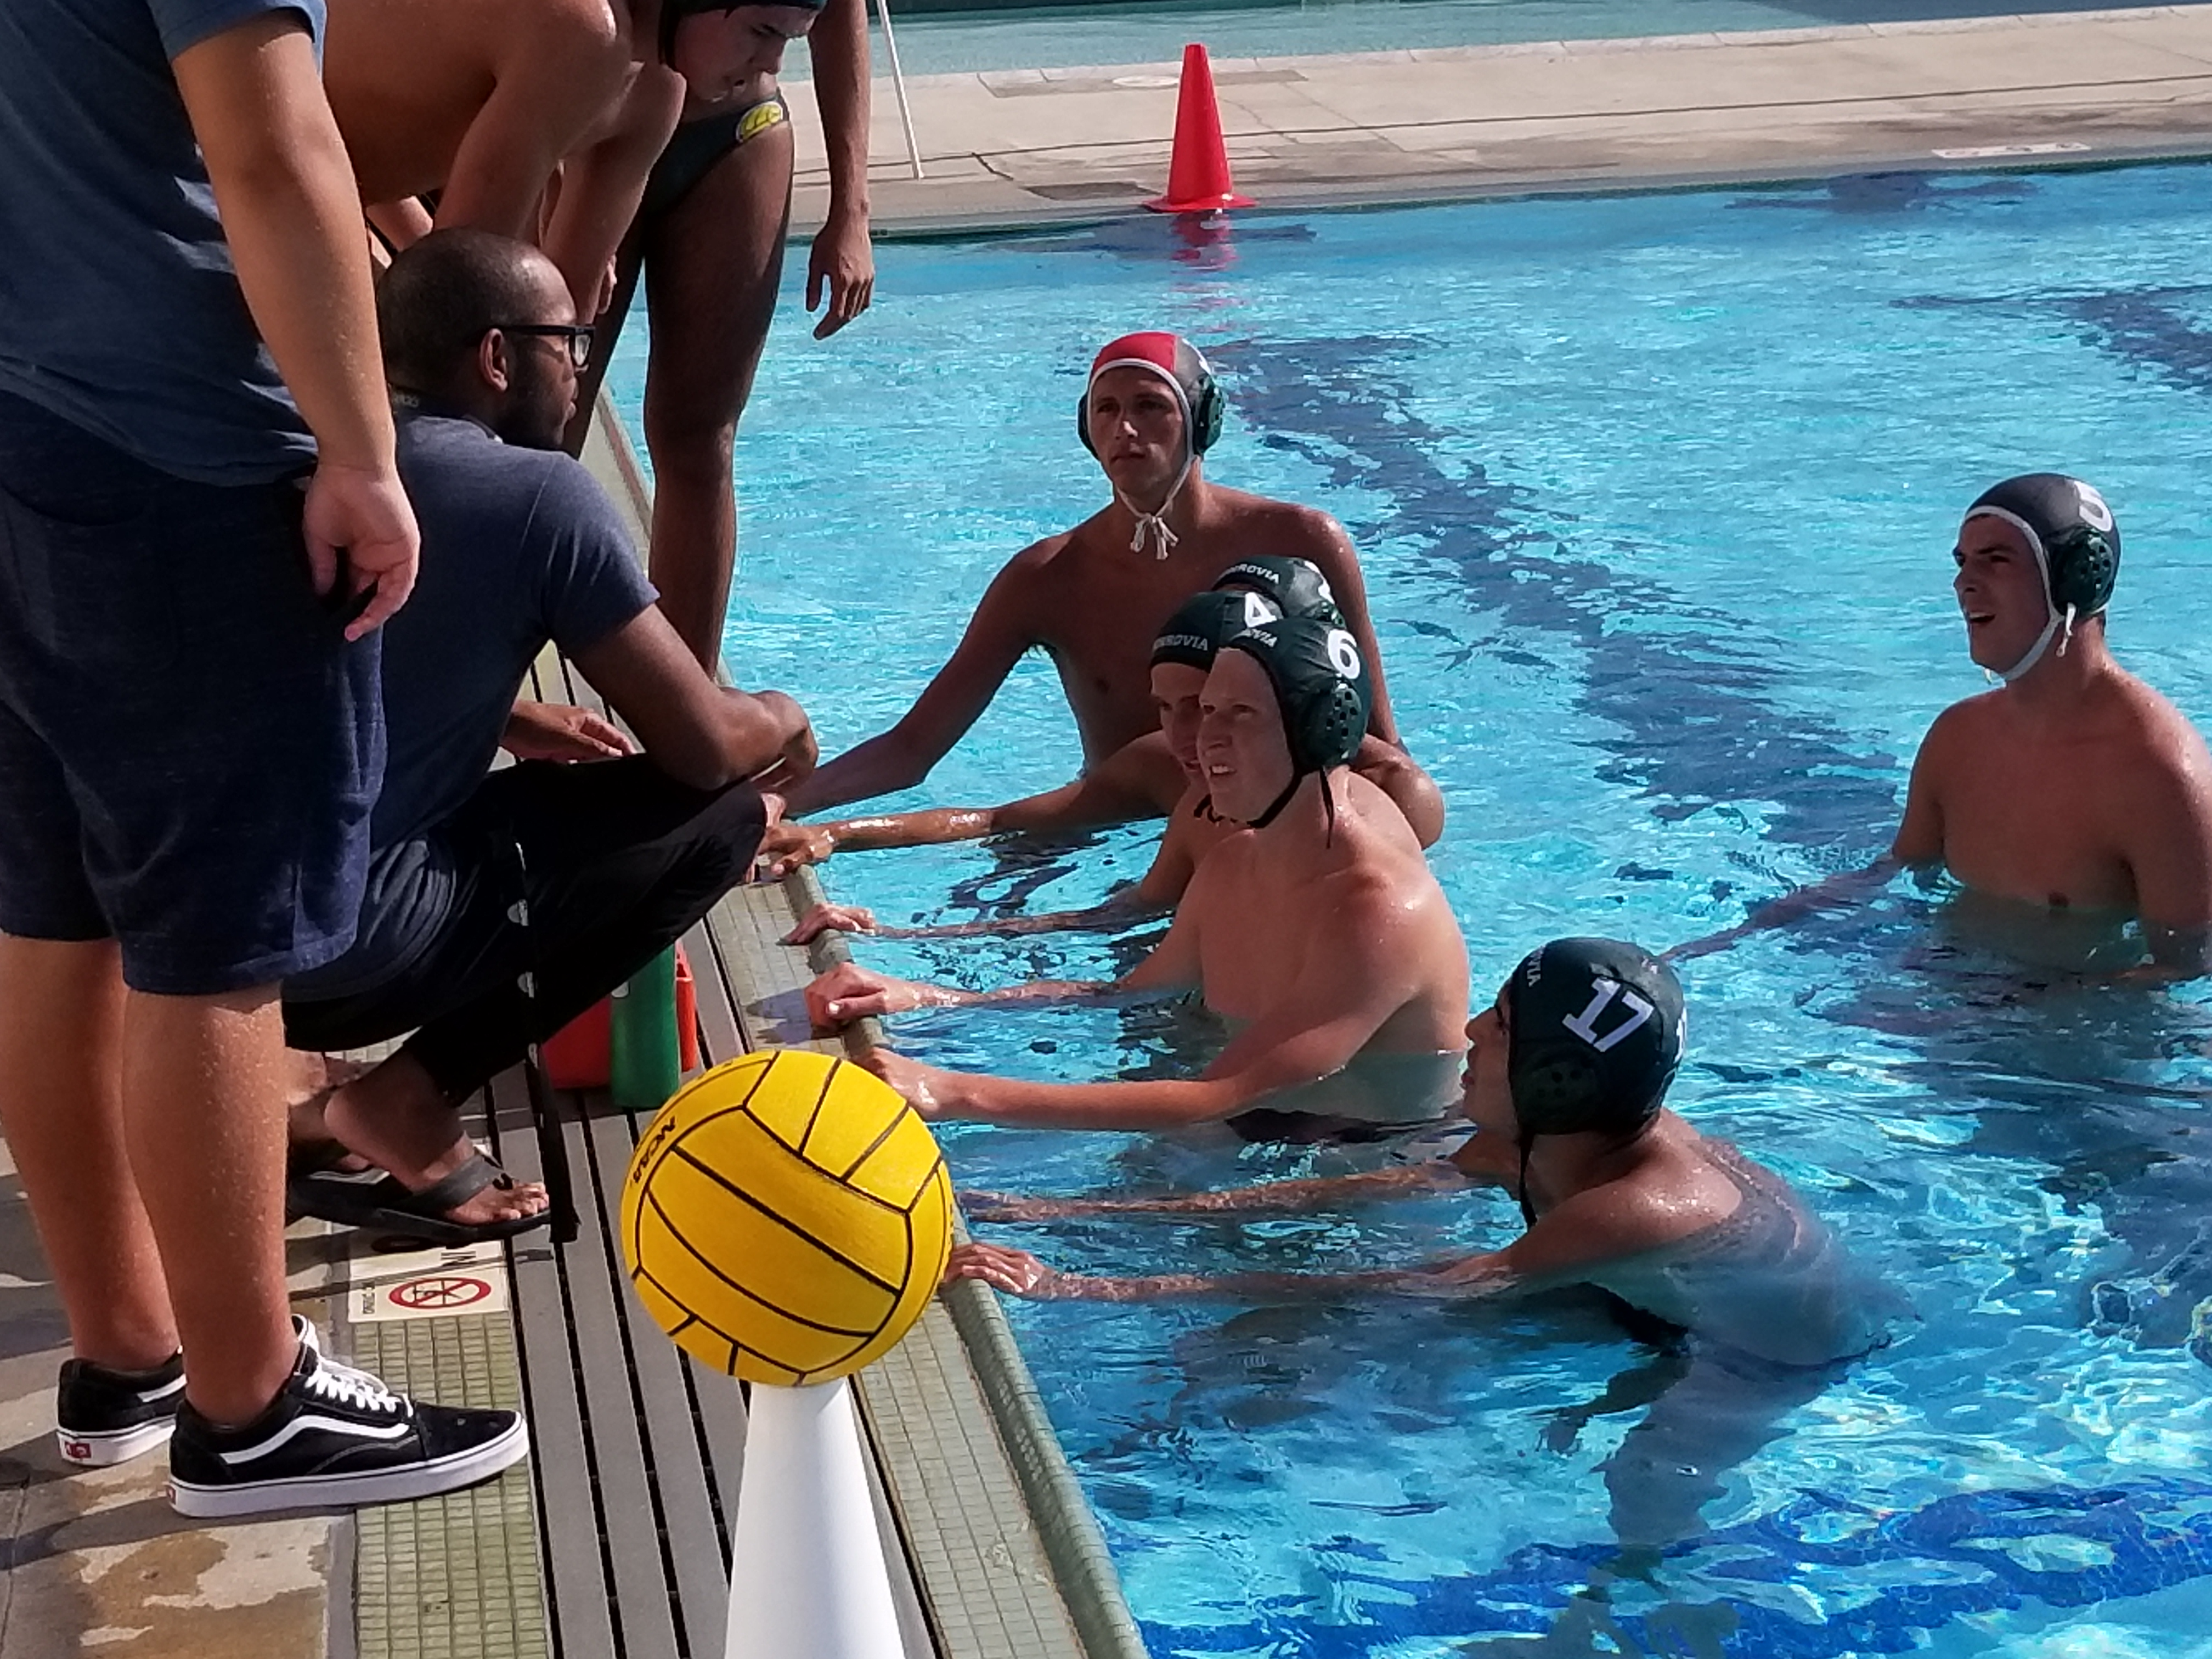 BOYS' WATER POLO Notches a Double-OT Victory Over Arcadia!! Great Game by Both Squads!